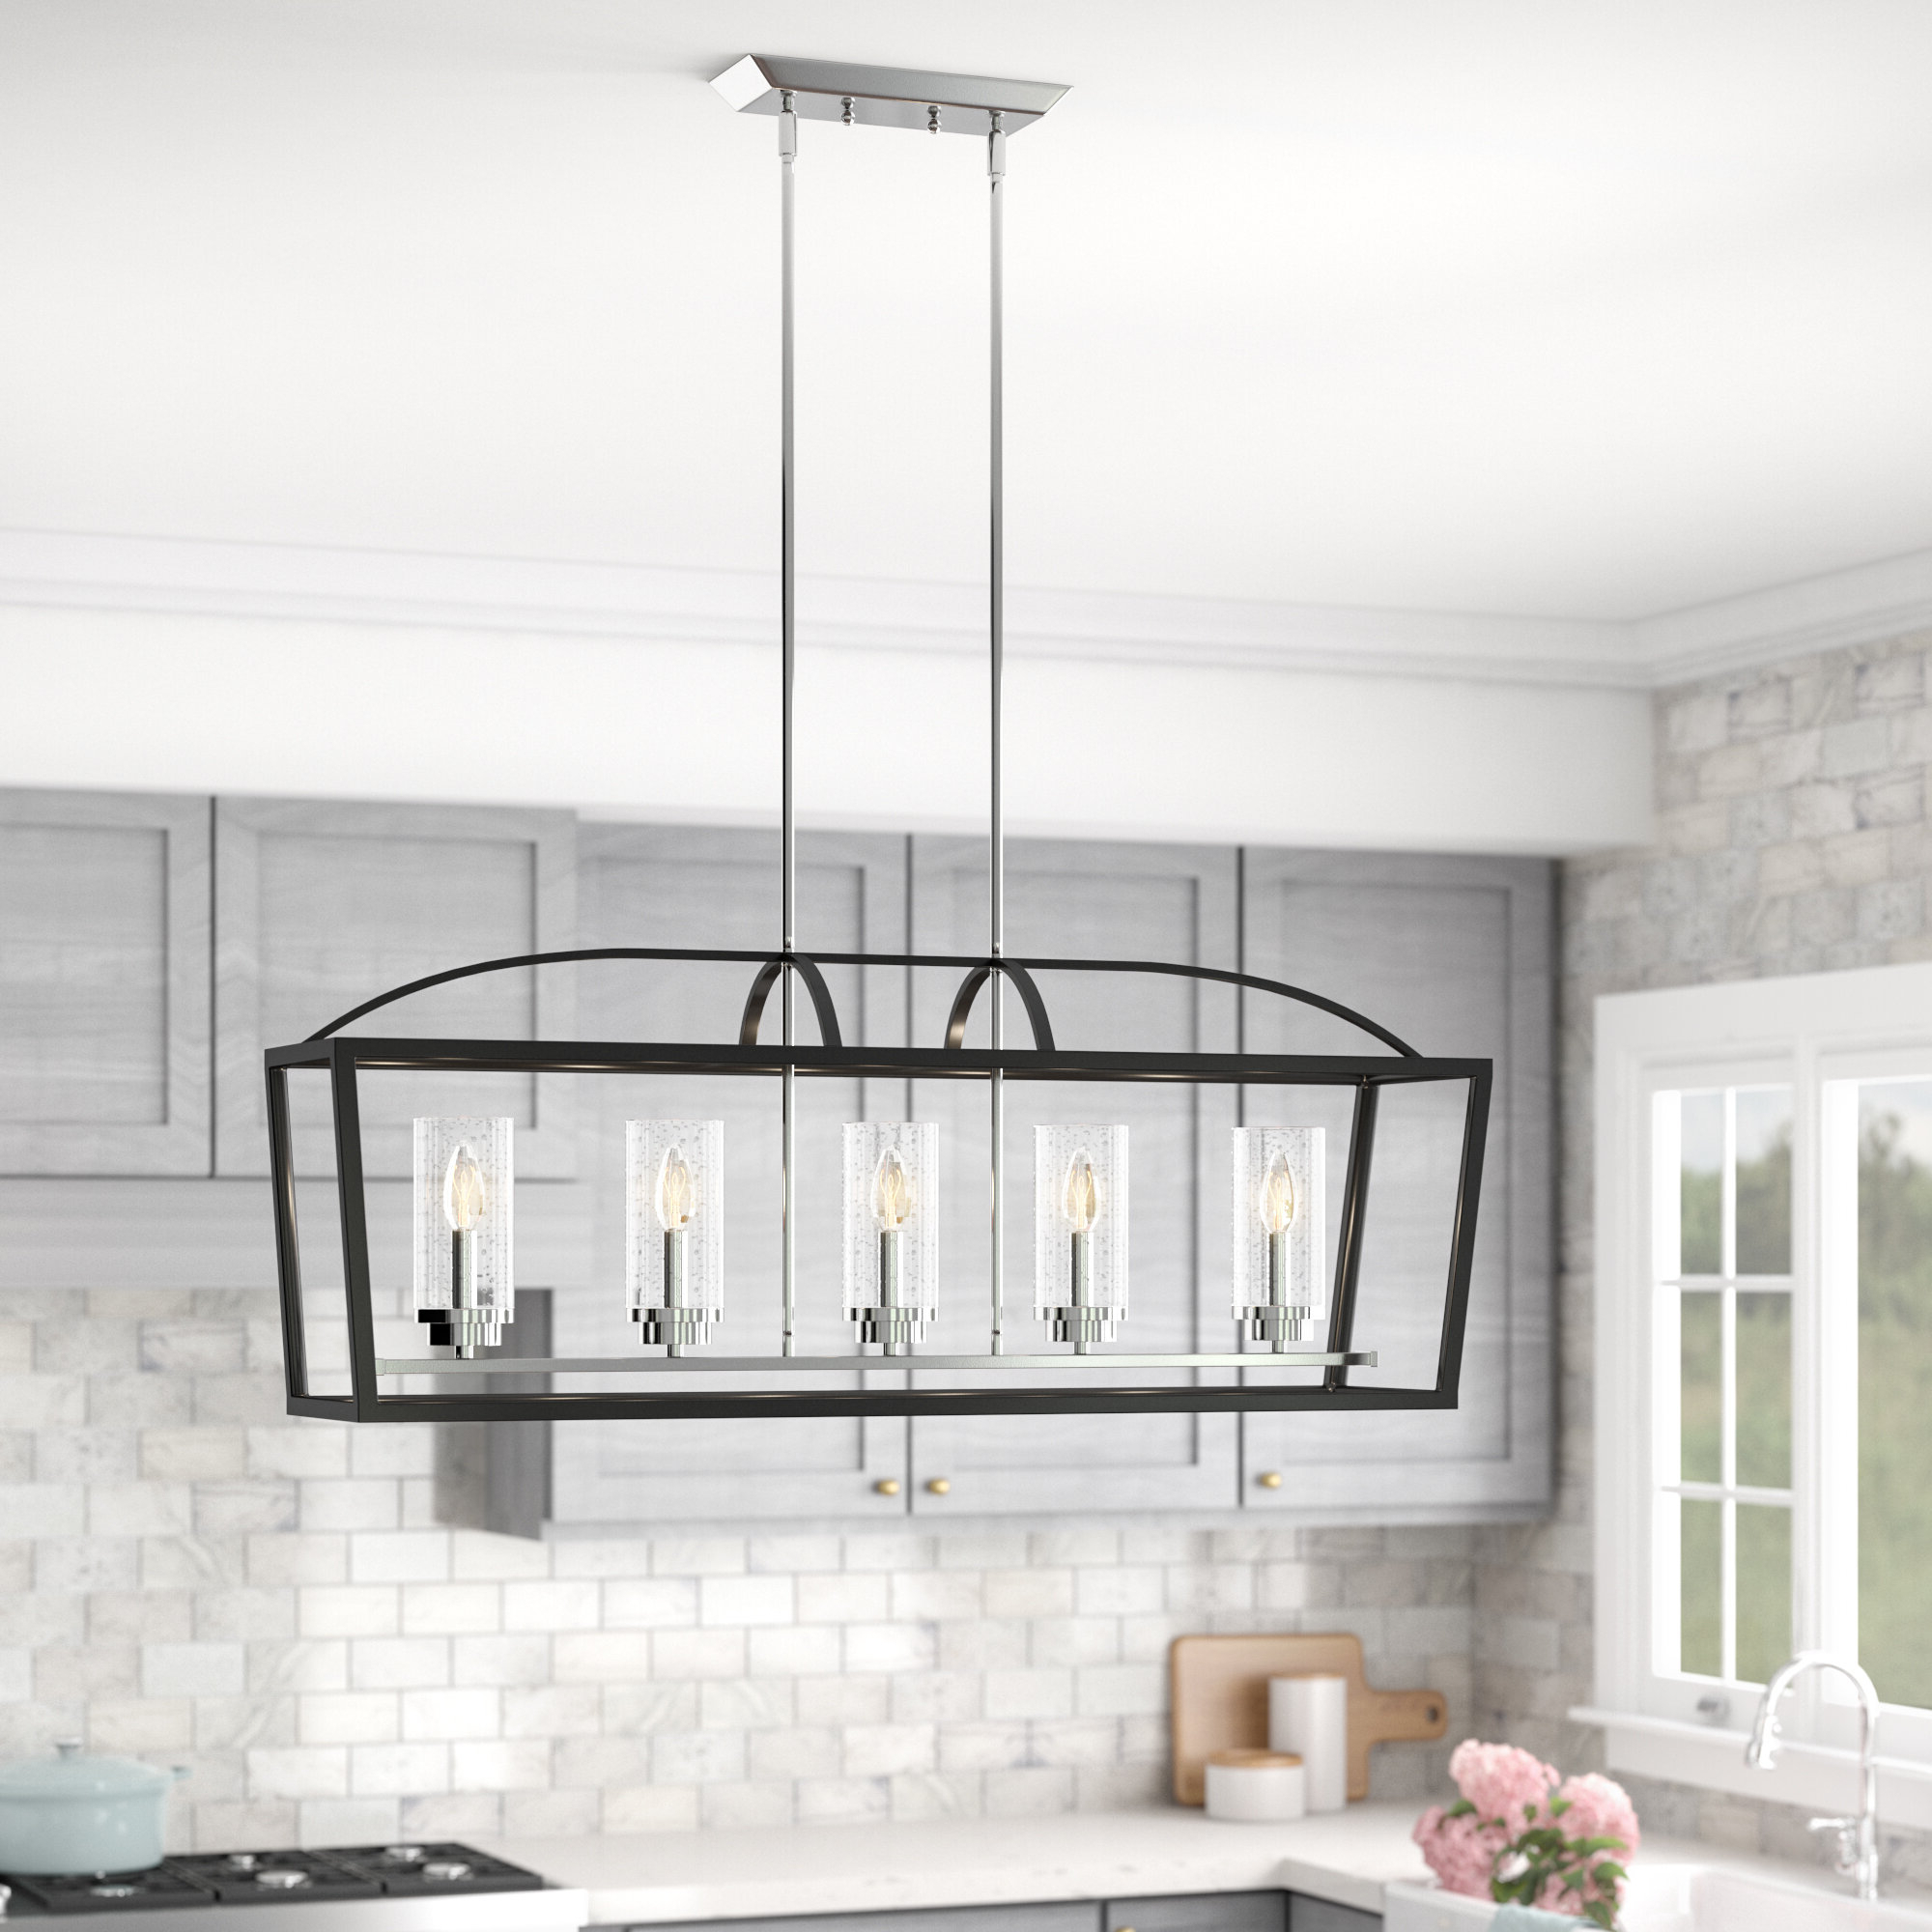 Famous Cinchring 4 Light Kitchen Island Linear Pendants Within Luna 5 Light Kitchen Island Linear Pendant (View 12 of 25)